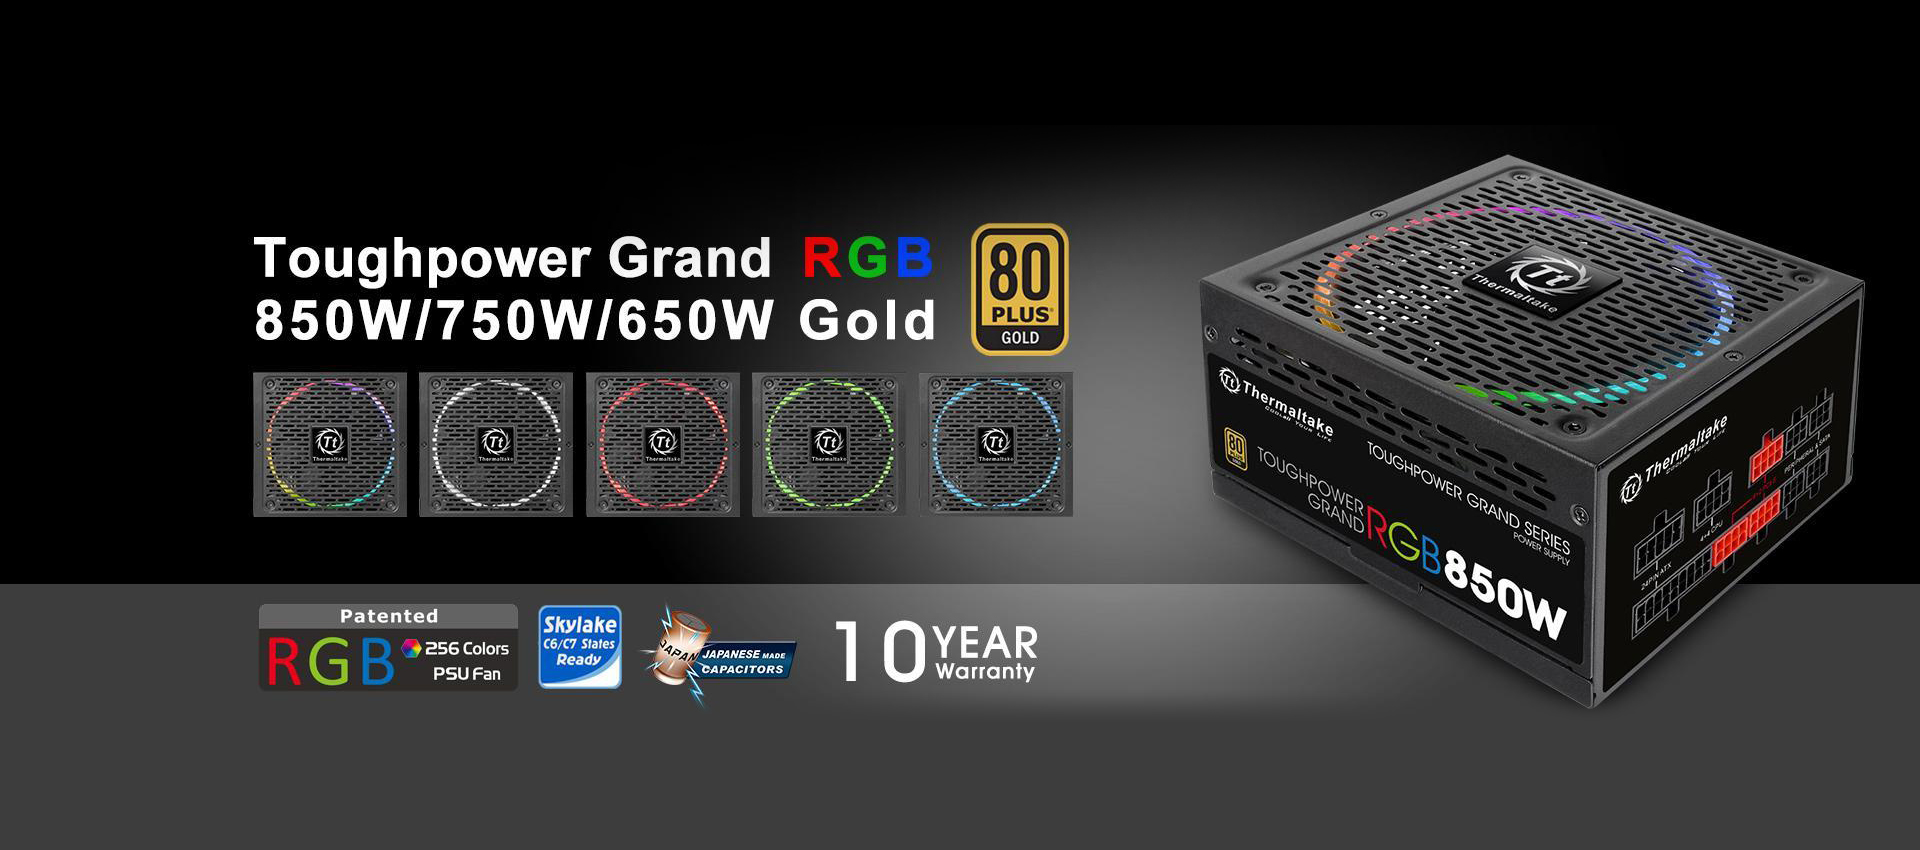 Toughpower Grand RGB 850W Gold Fully Modular